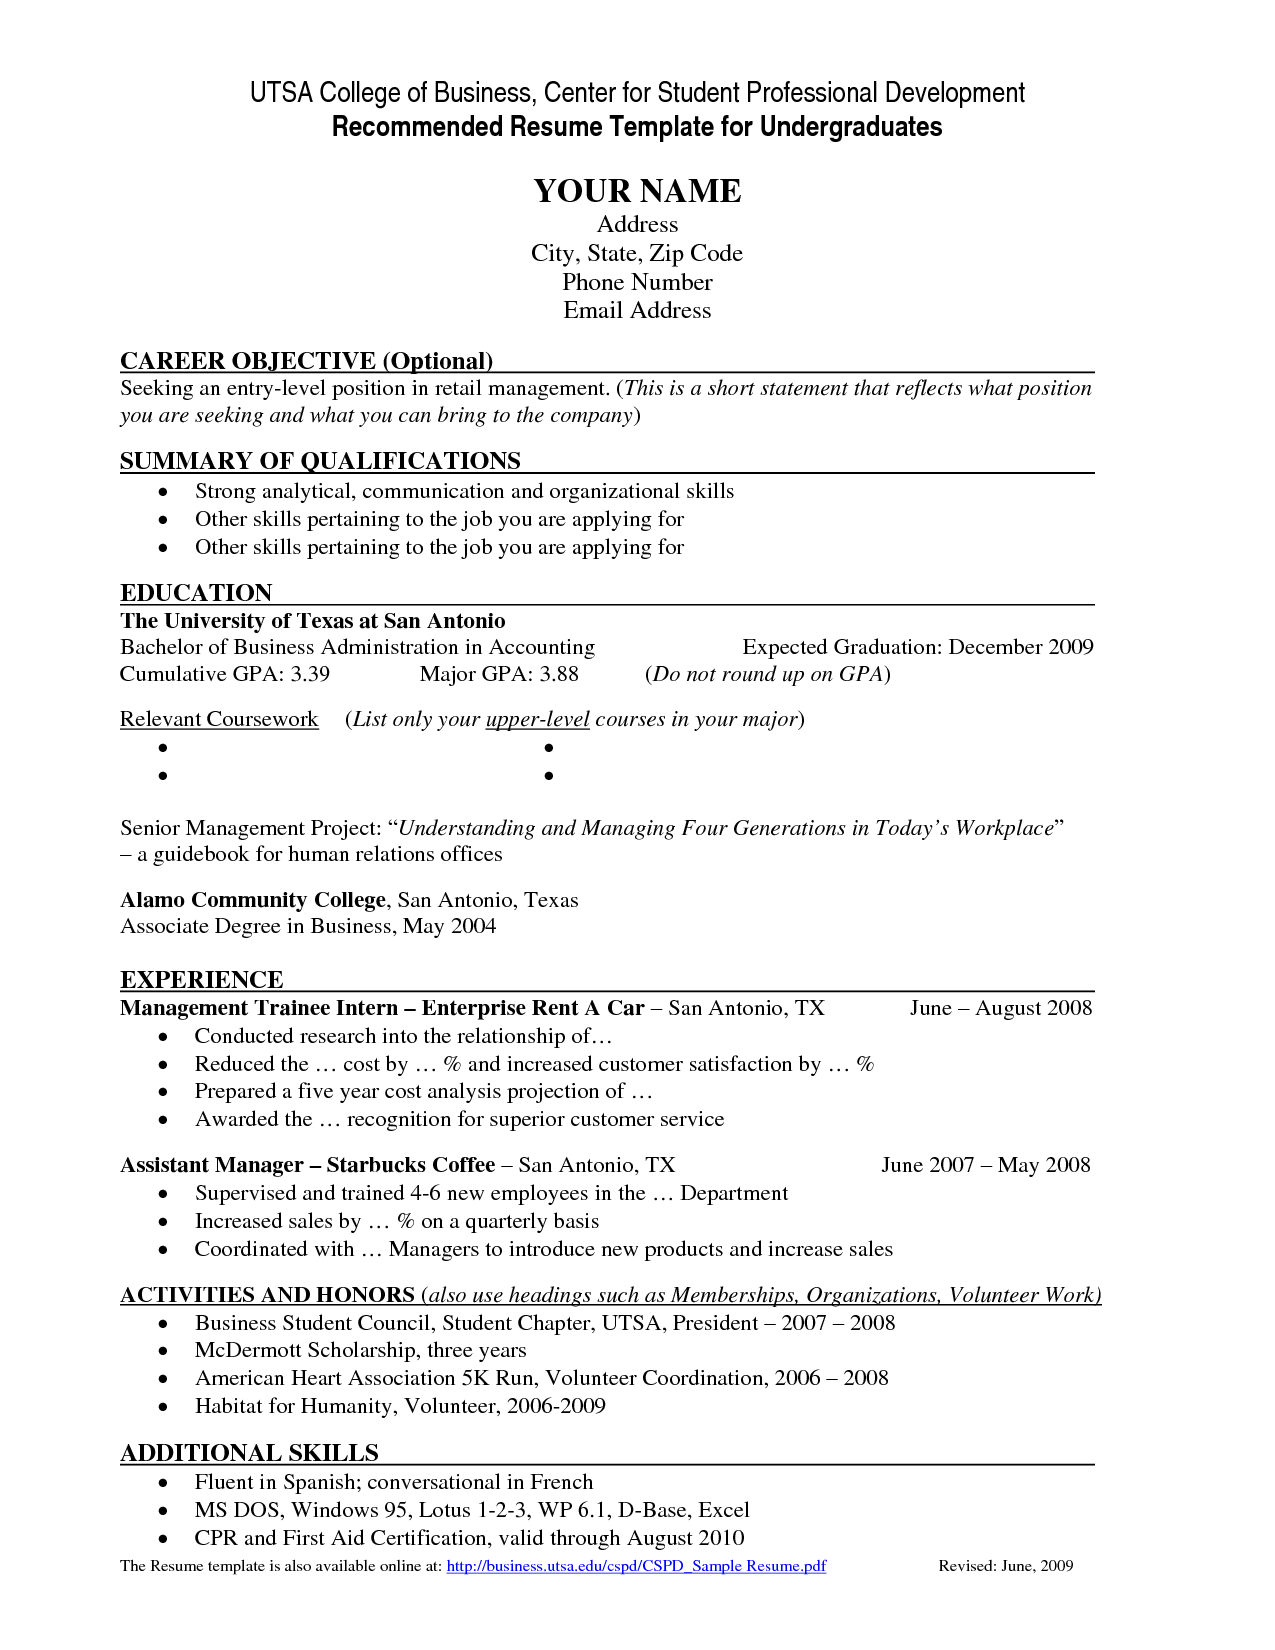 resume template for heinze college